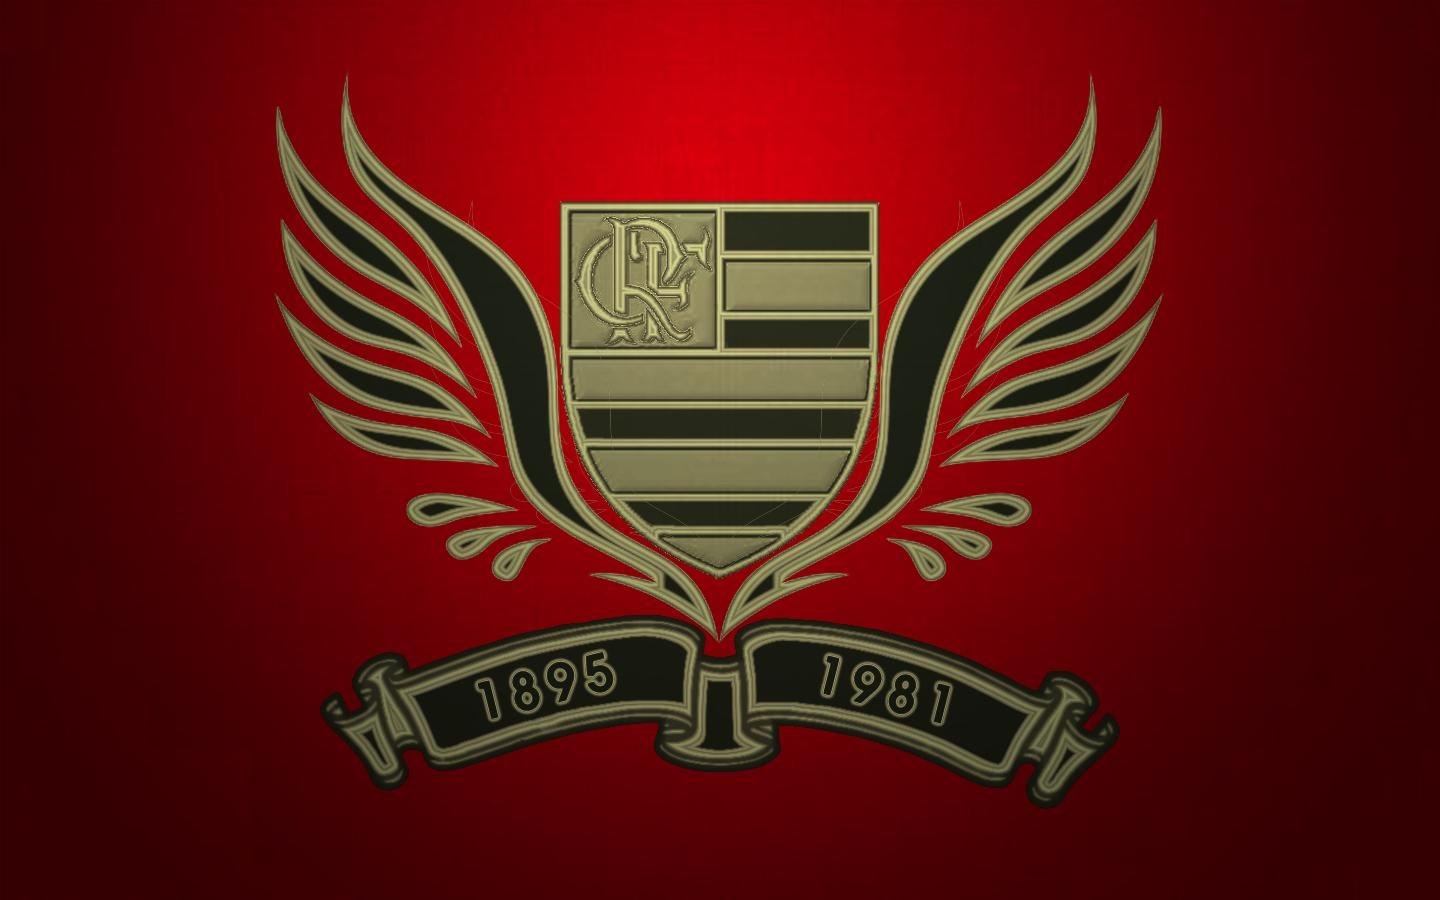 Clube De Regatas Do Flamengo Wallpapers HD Download